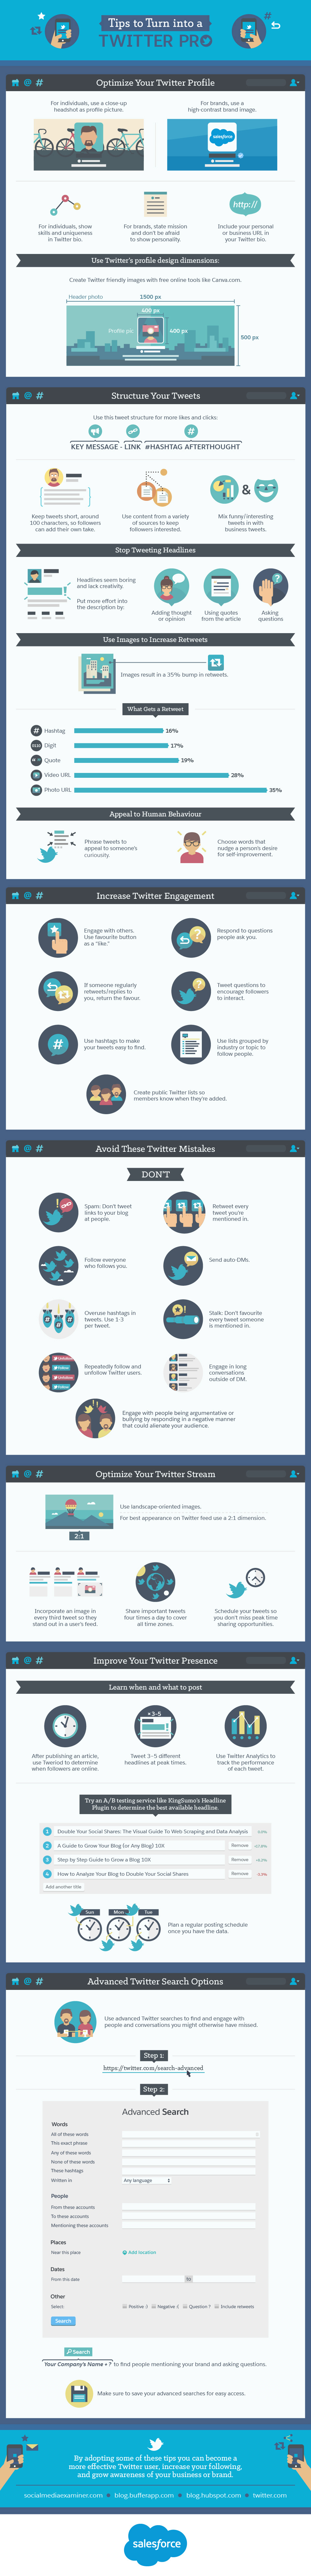 Twitter Tips to Turn into a Twitter Pro